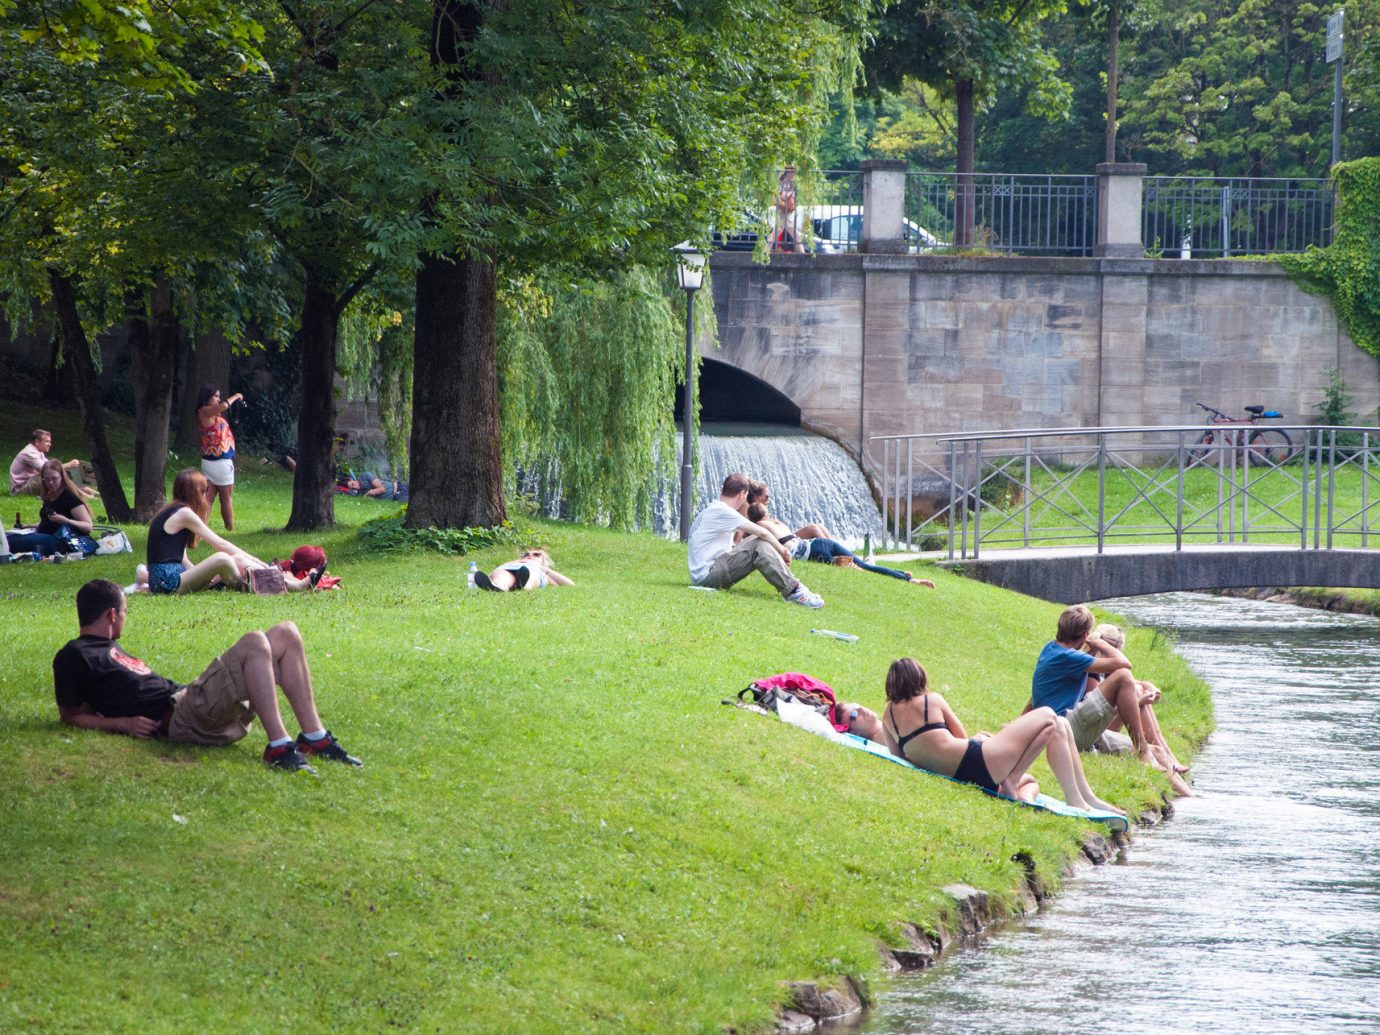 Berlin Germany Munich Trip Ideas tree grass outdoor leisure park group people waterway